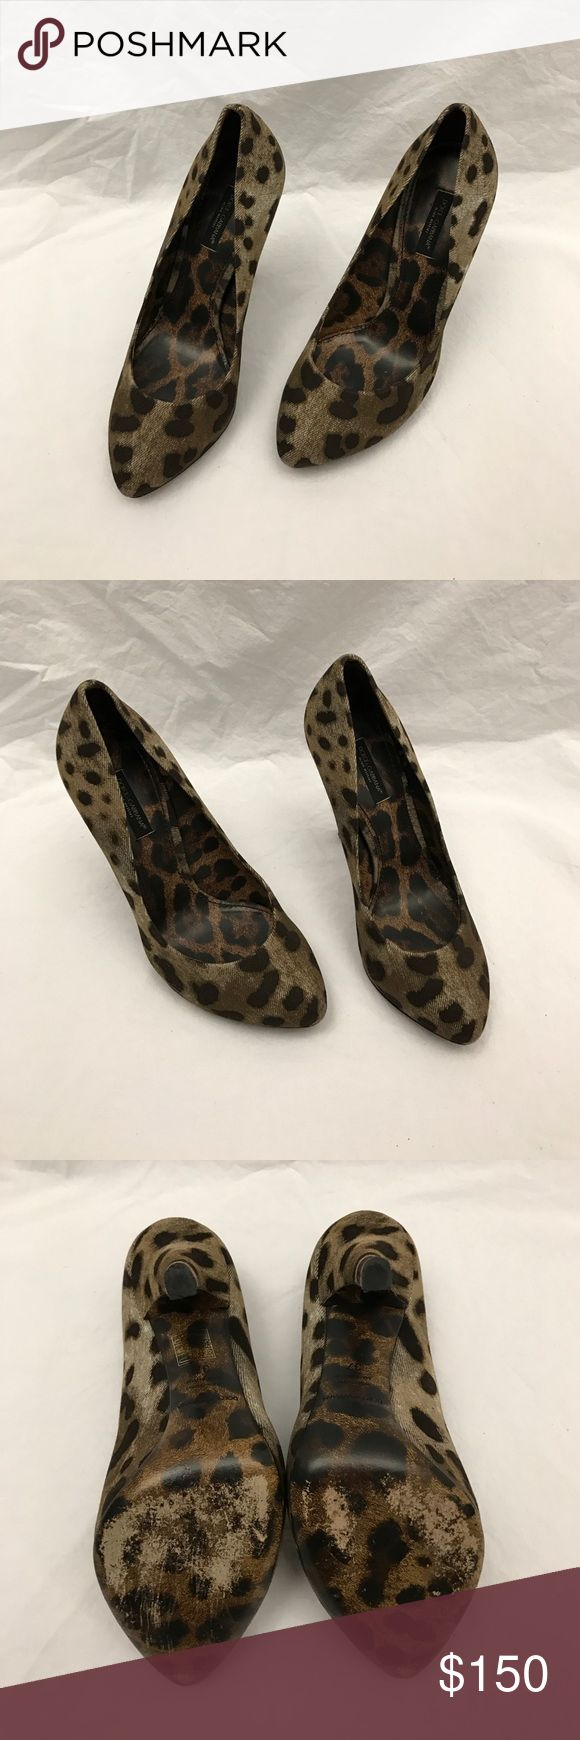 Dolce & Gabbana Leopard Heels Great condition D&G leopard heels. 100% Authentic! Dolce & Gabbana Shoes Heels